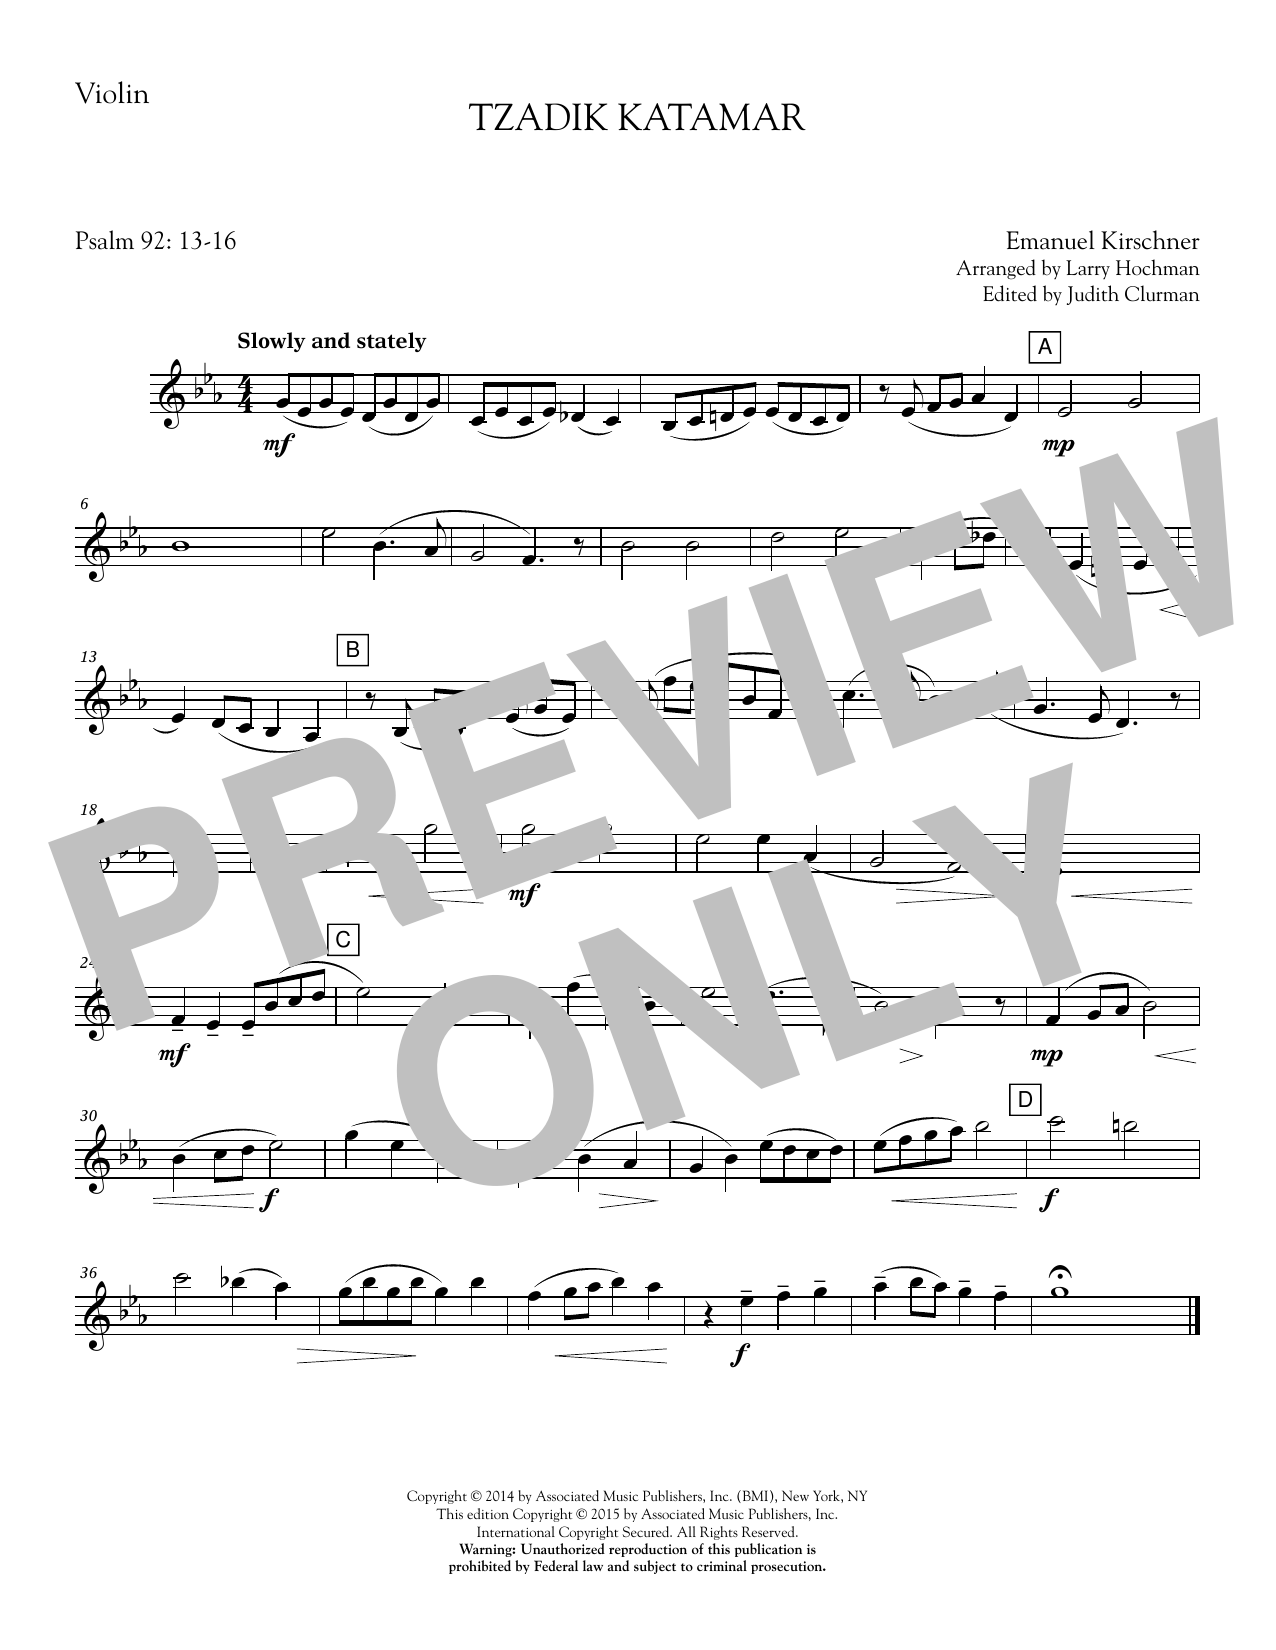 Tzadik Katamar - Violin Sheet Music